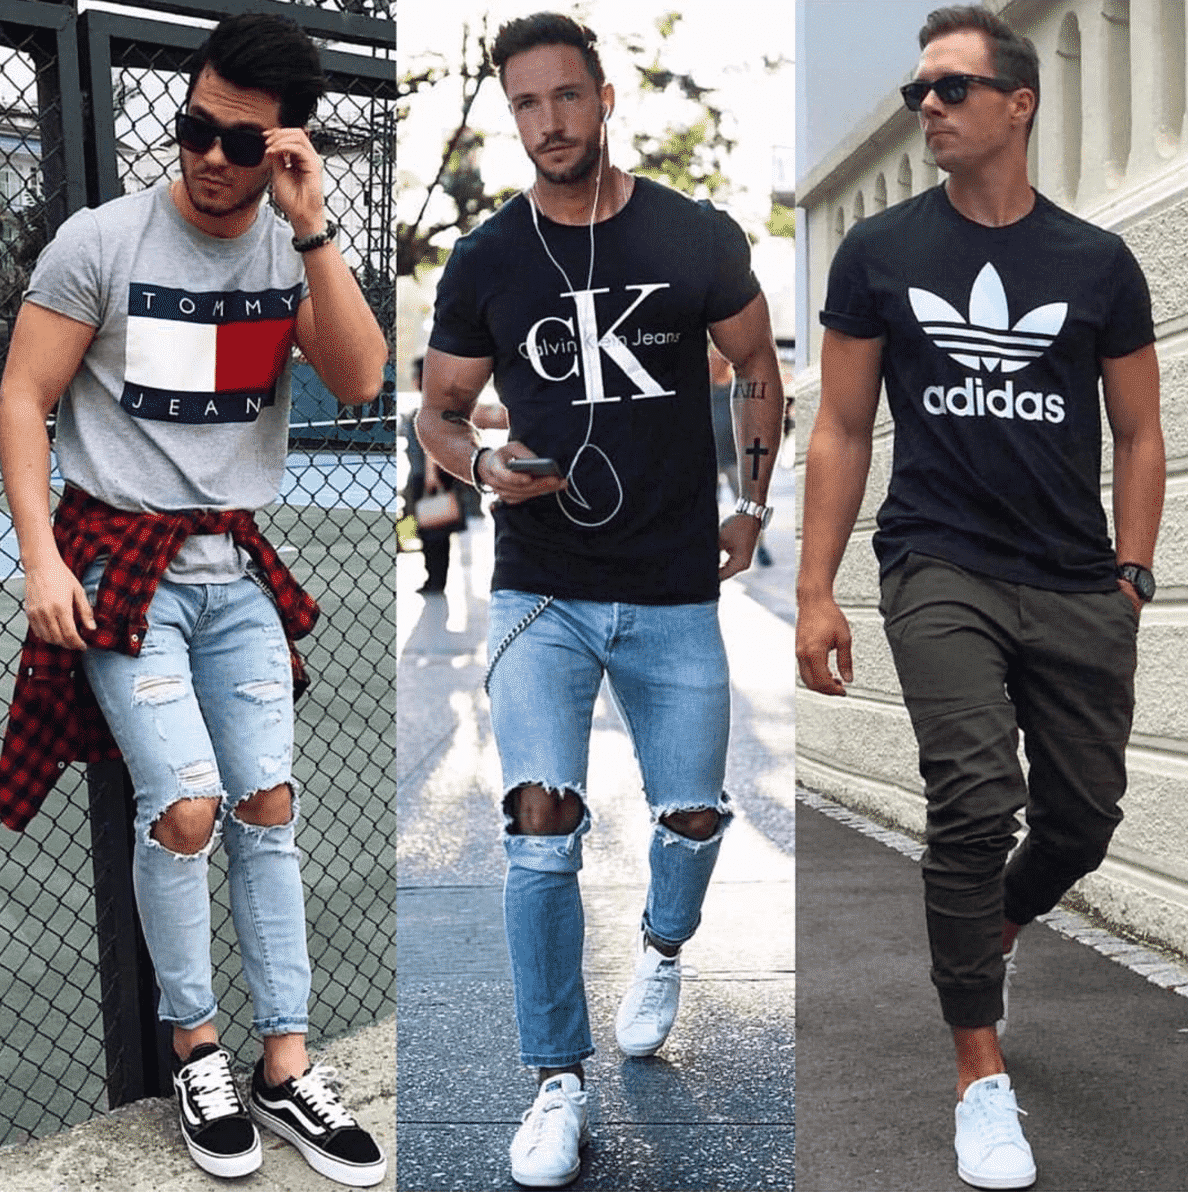 men-street-style-outfits 17 Most Popular Street Style Fashion Ideas for Men